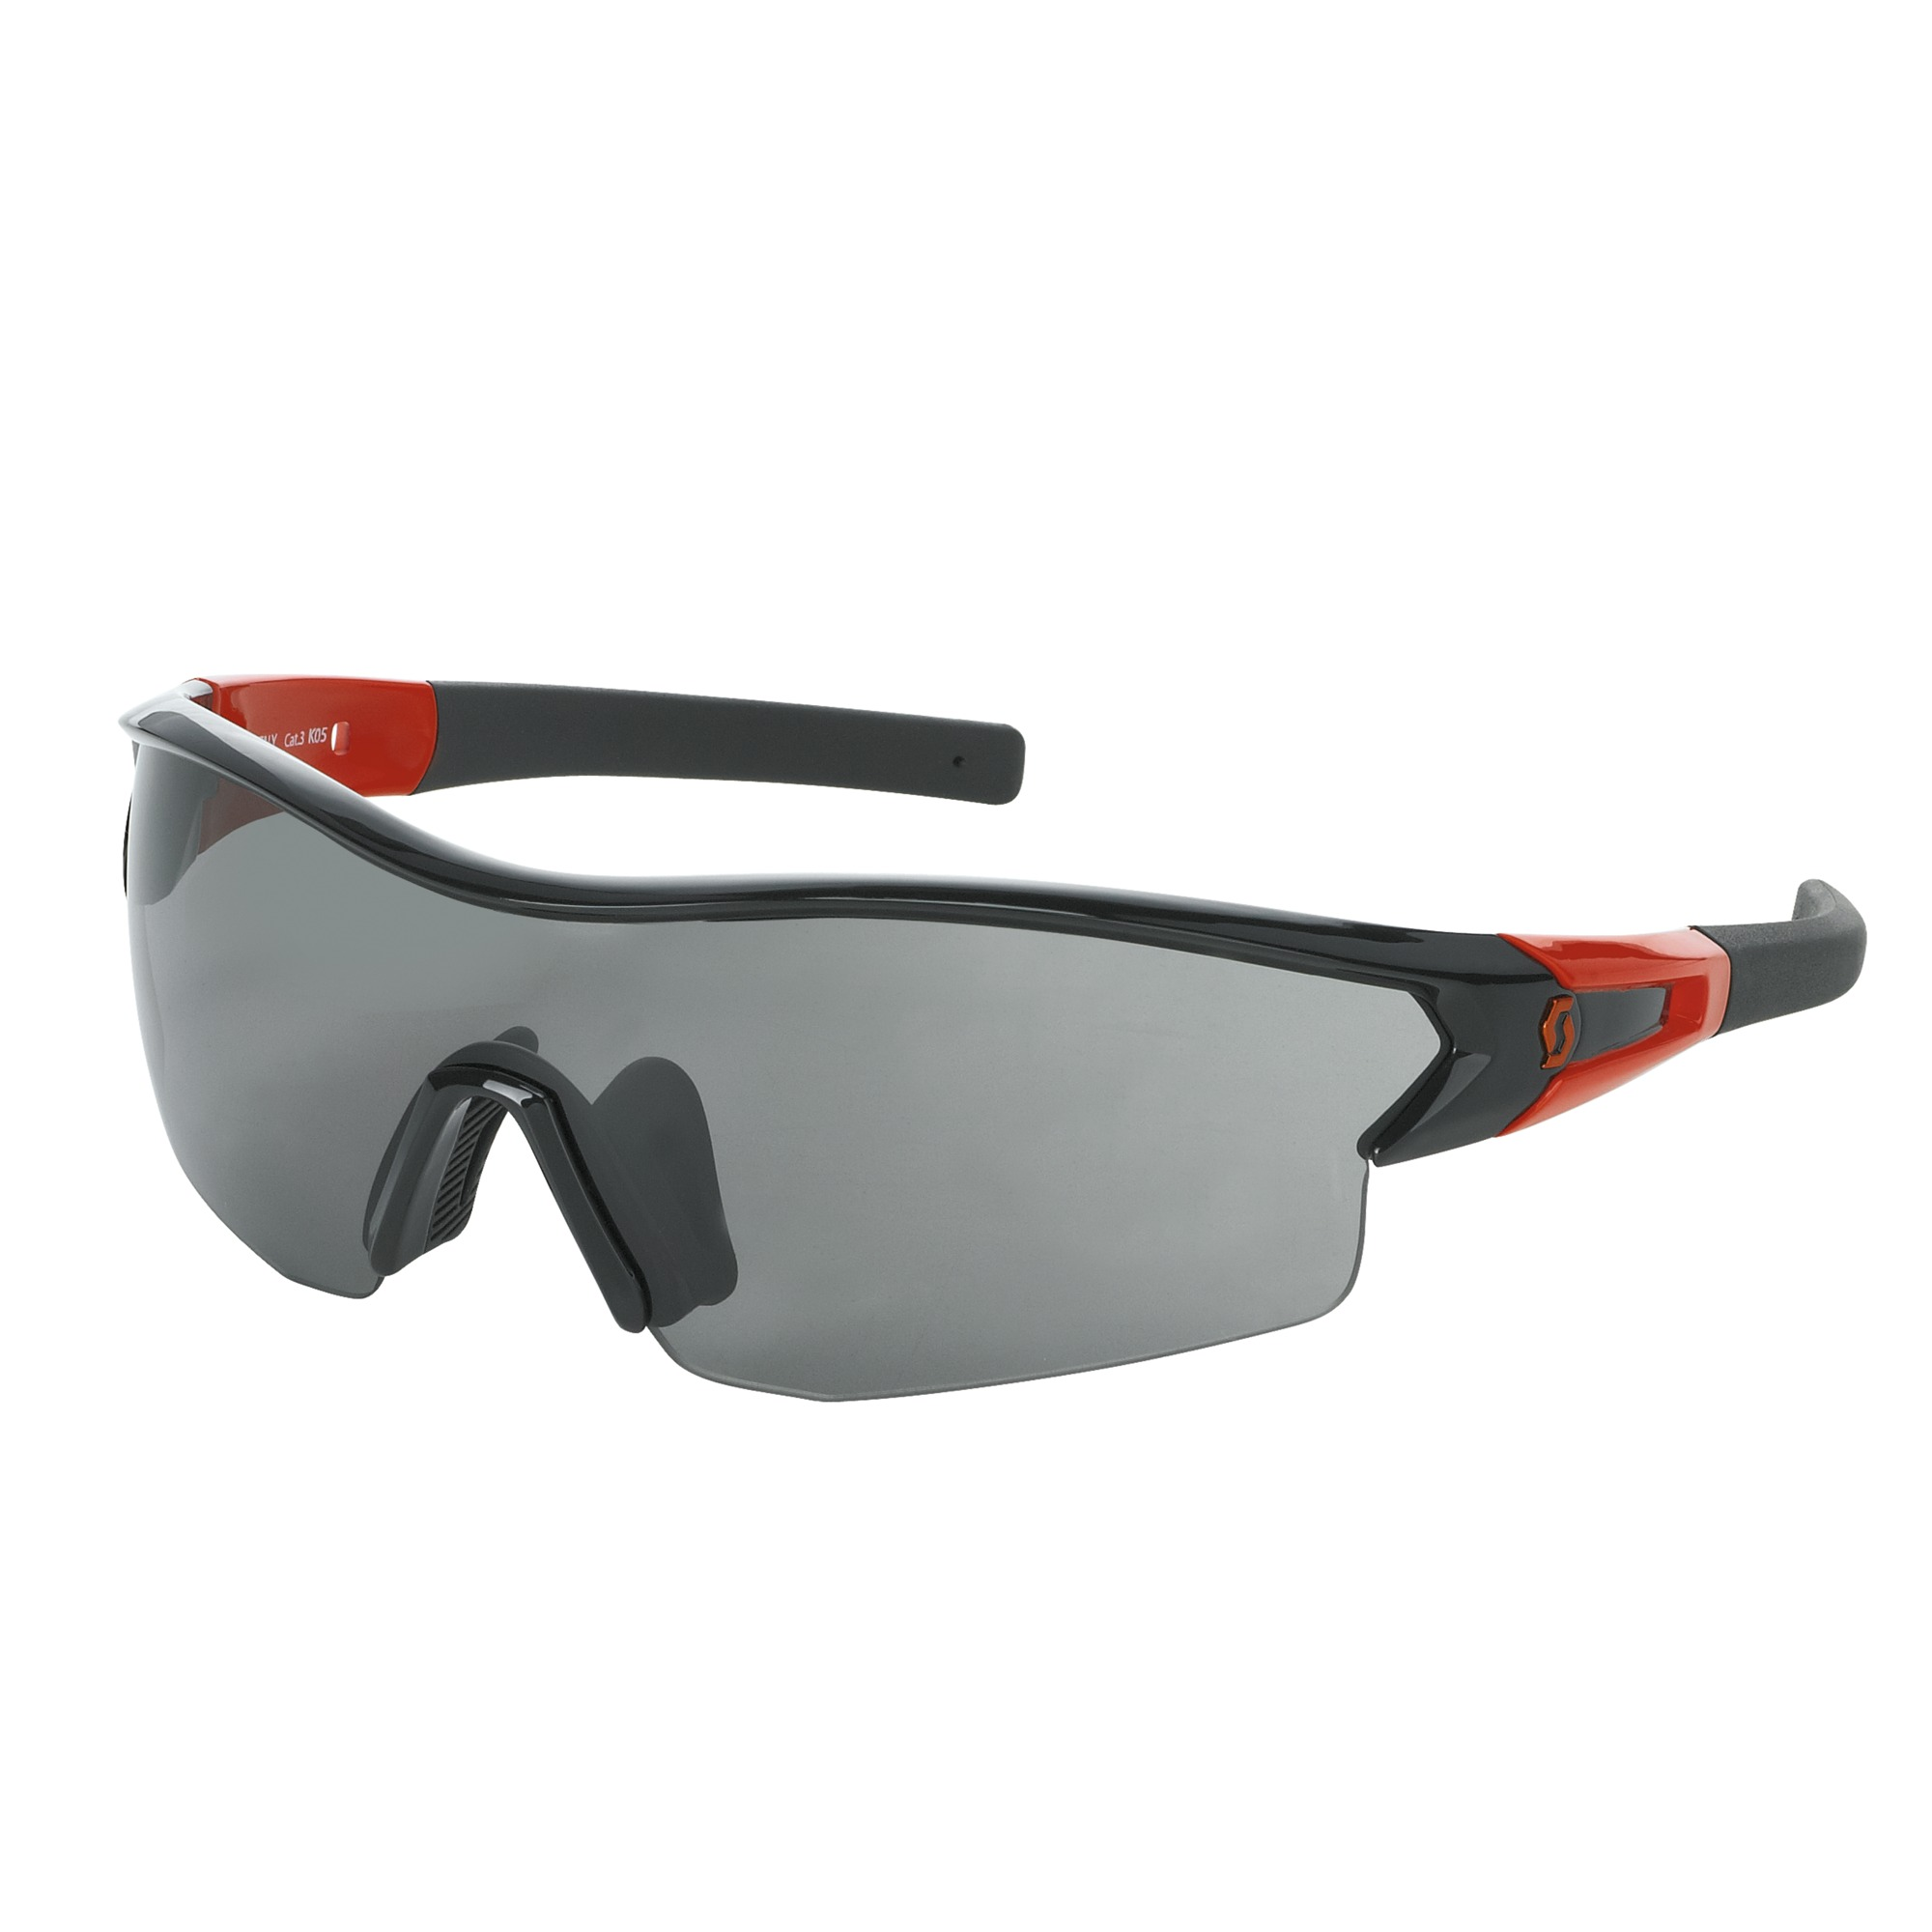 OCCHIALE SPORTIVO SCOTT LEAP SUNGLASSES 238999 BLACK GLOSSY ORANGE GREY